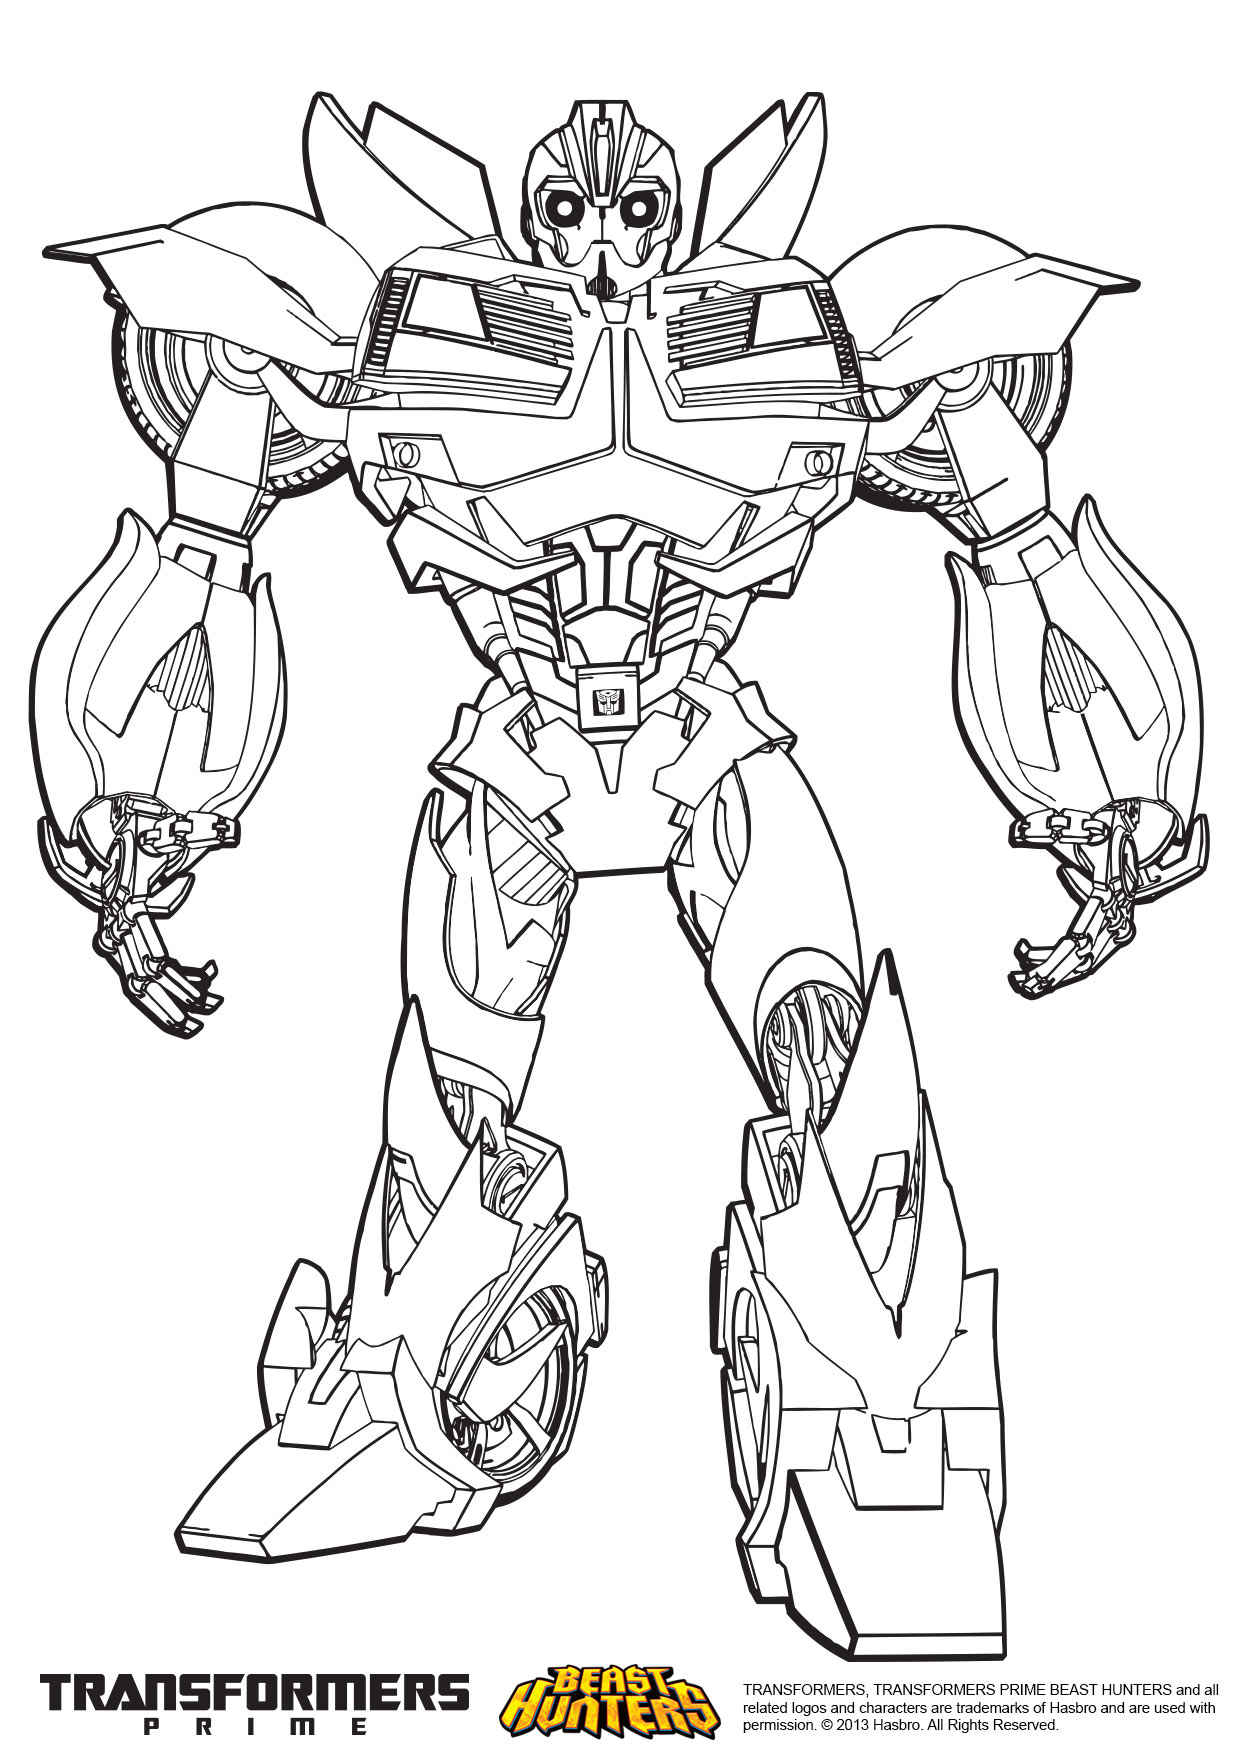 transformer bumblebee coloring pages - photo#1